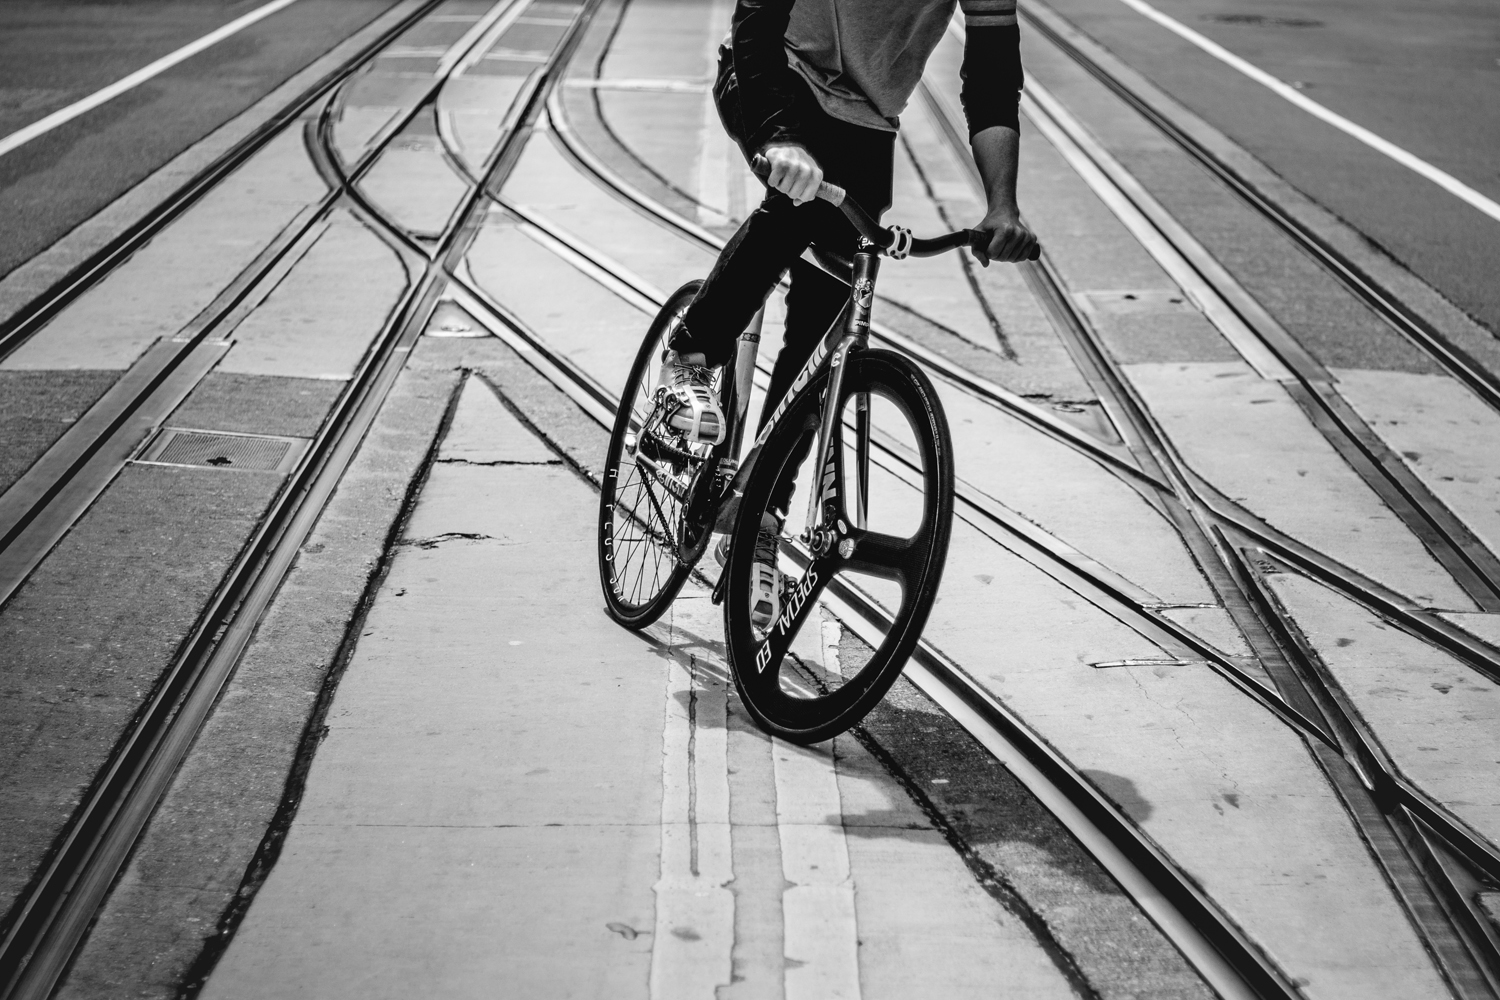 PatrickCurley_FixedGear_CinelliMASHBolt_TrolleyTracks